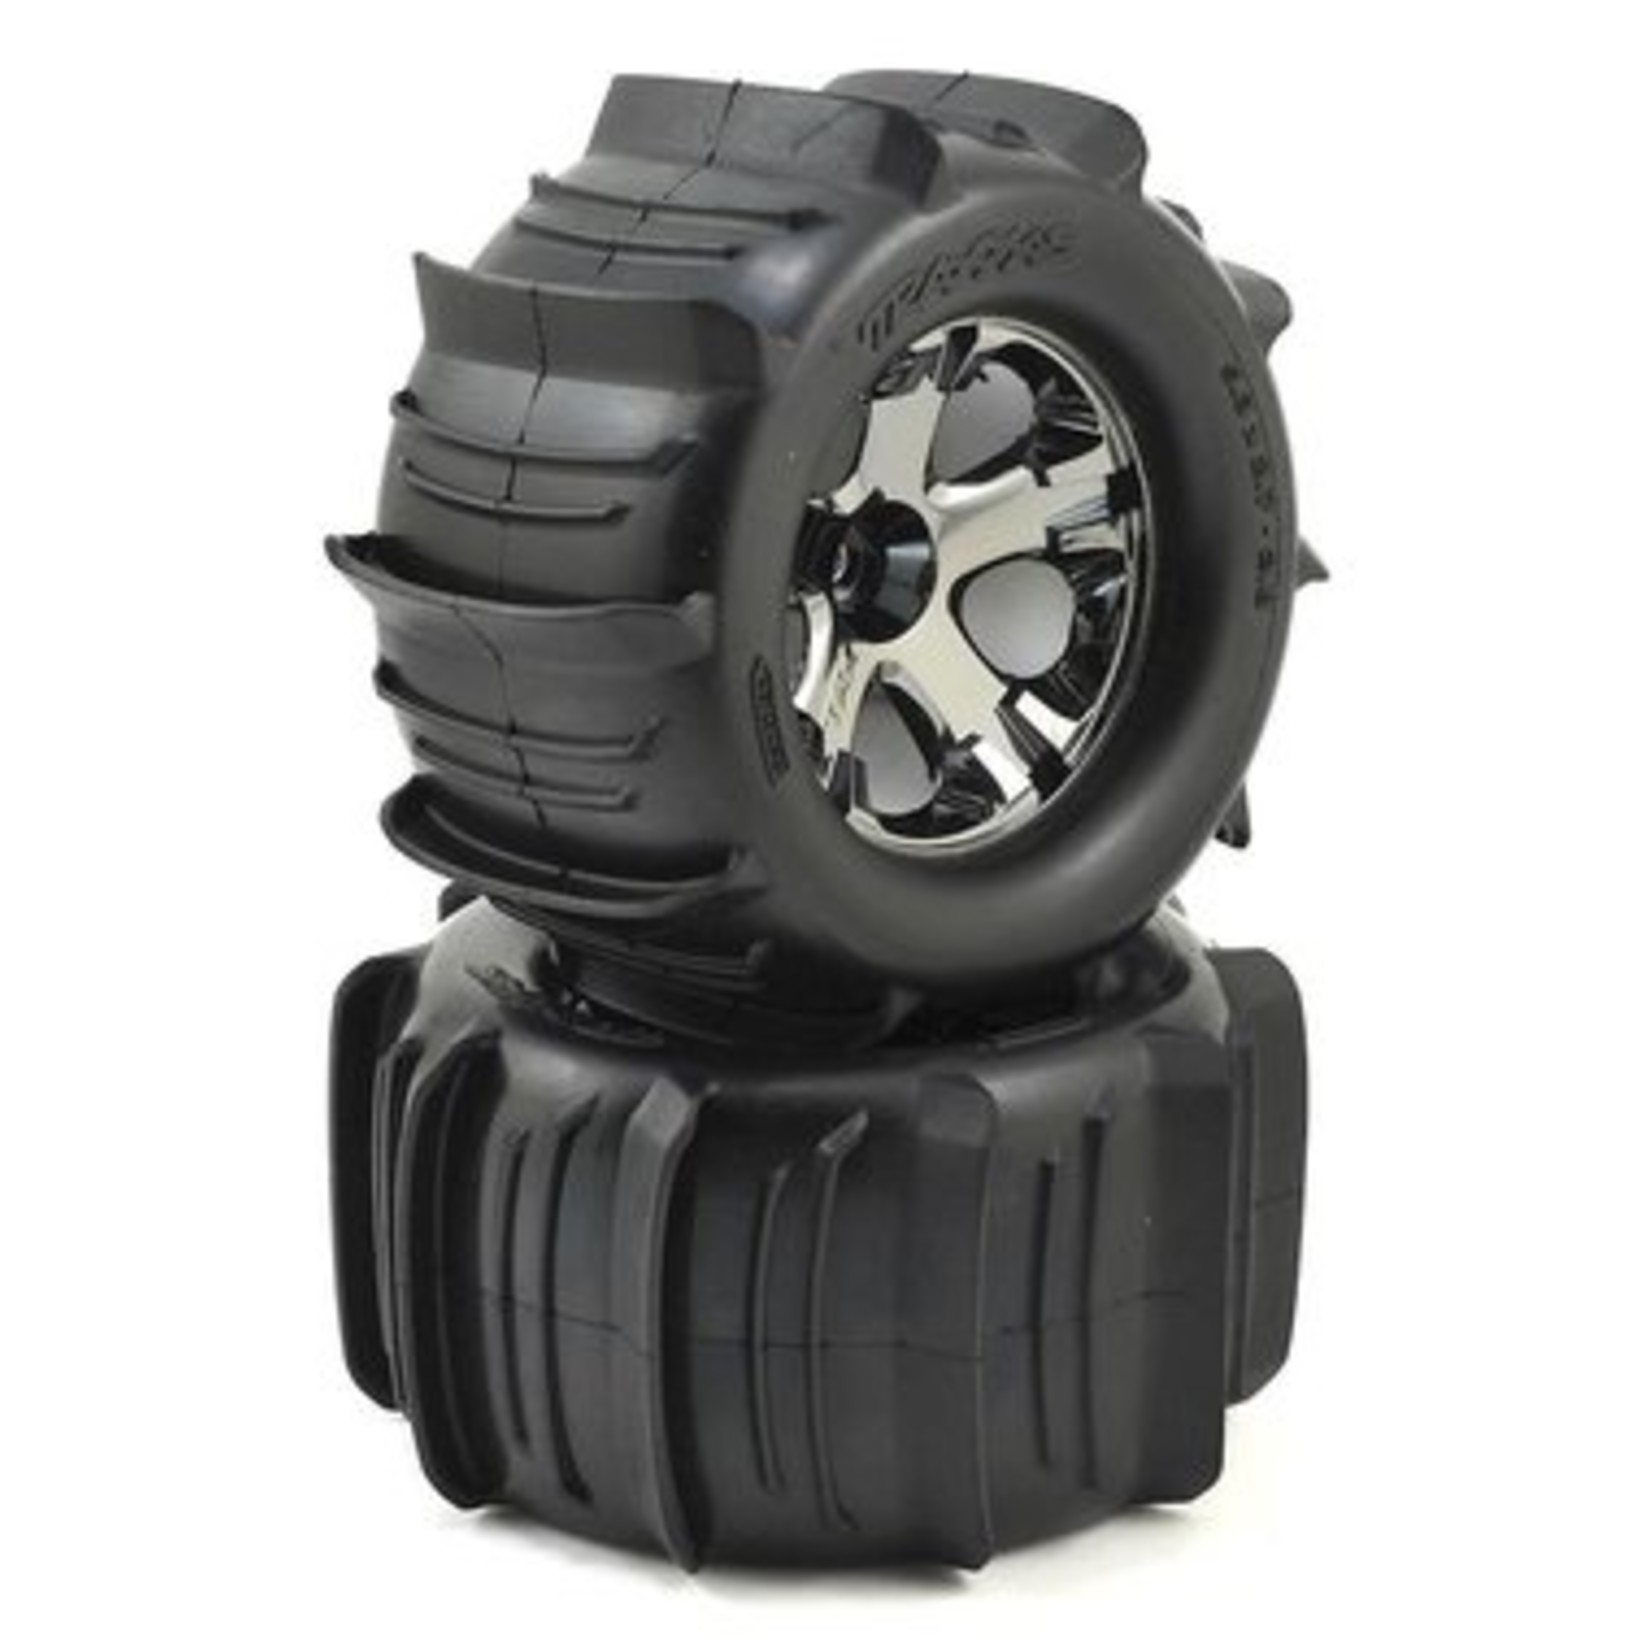 Traxxas TRA4175 Traxxas Tires & Wheels, Assembled, Glued (2.8') (All-Star Black Chrome Wheels, Paddle Tires, Foam Inserts) (Nitro Rear/ 4WD Electric Front/Rear) (2) (TSM Rated)